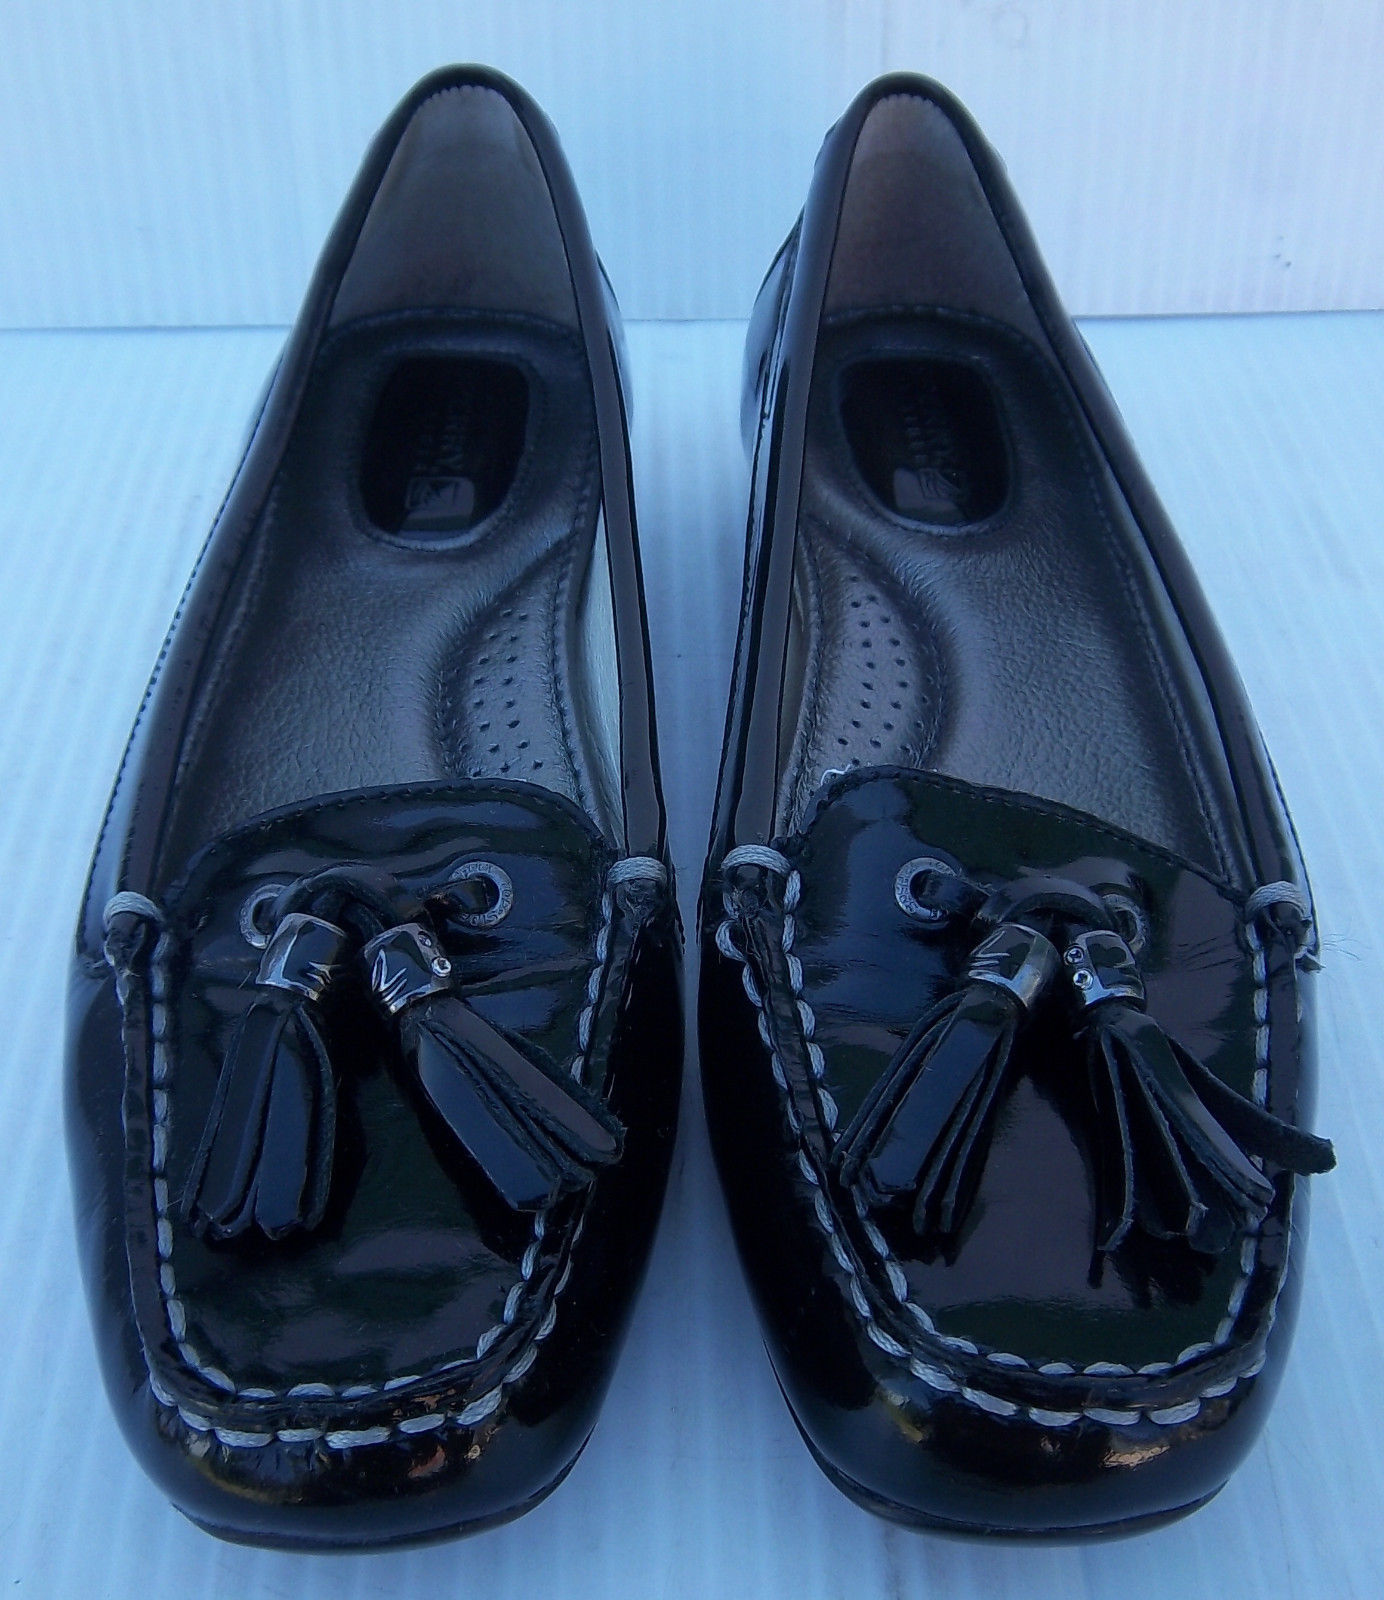 0217874be83 Women s Sperry Top-Sider Black Patent and 38 similar items. S l1600